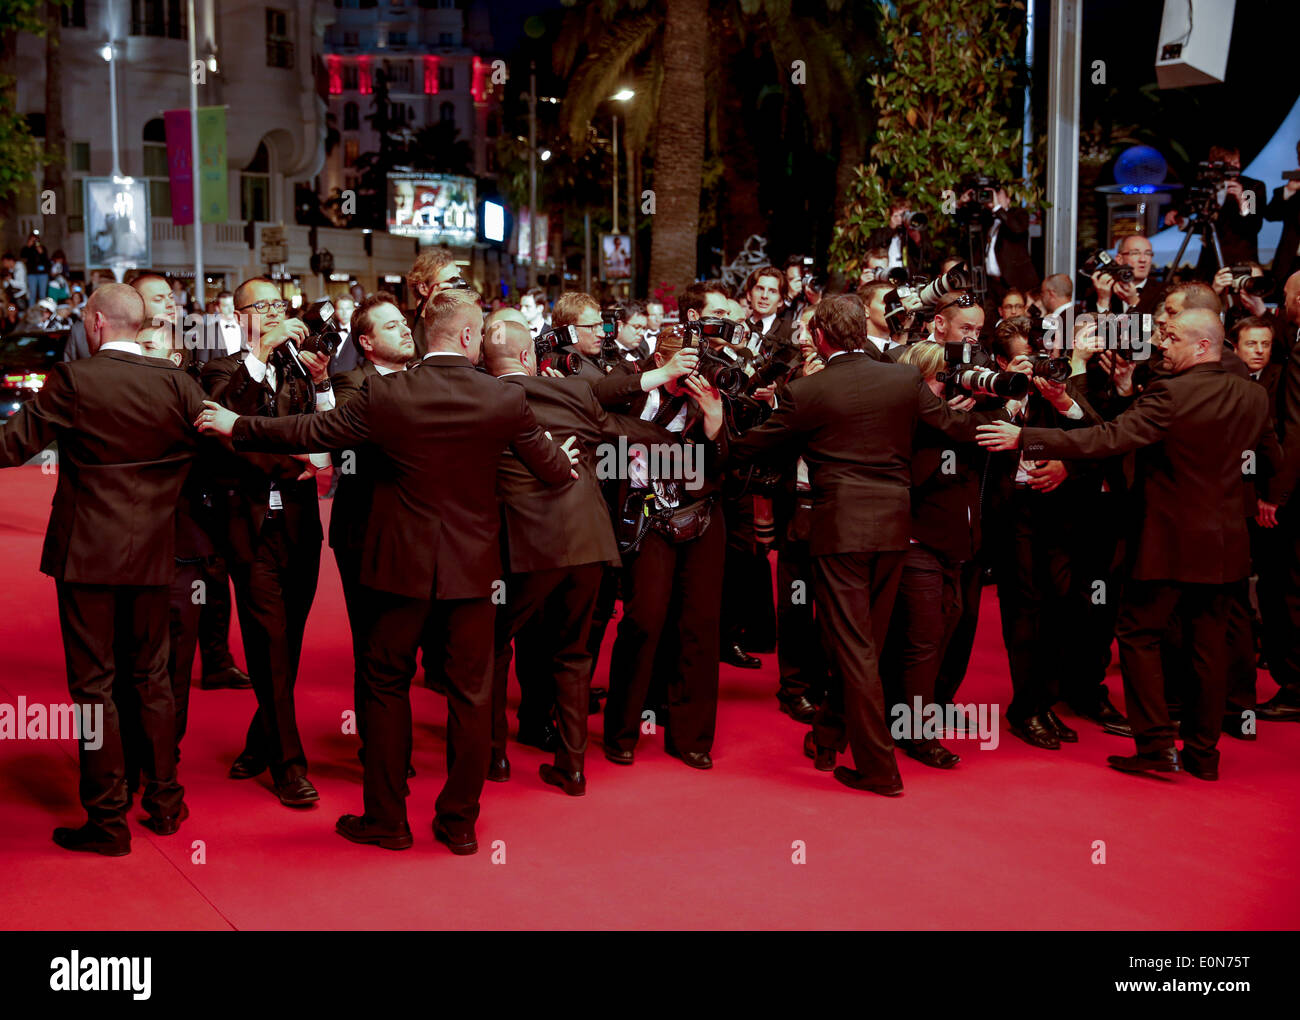 Red carpet press photographers captives premiere 67th cannes film stock photo 69308116 alamy - Red carpet photographers ...